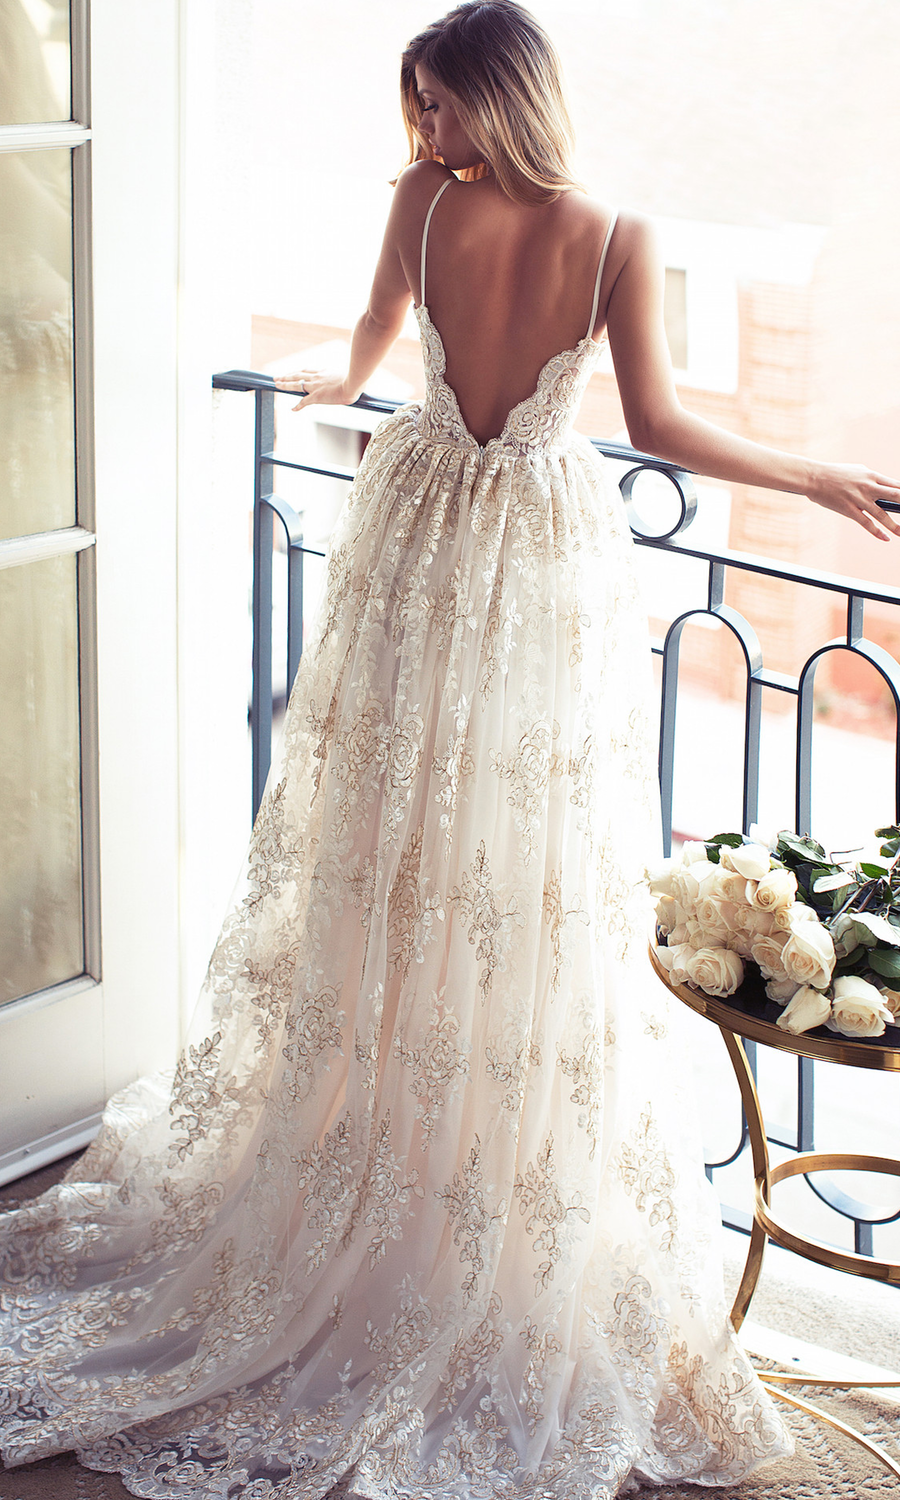 Lurelly belle lookbook nuba pinterest belle wedding dress and